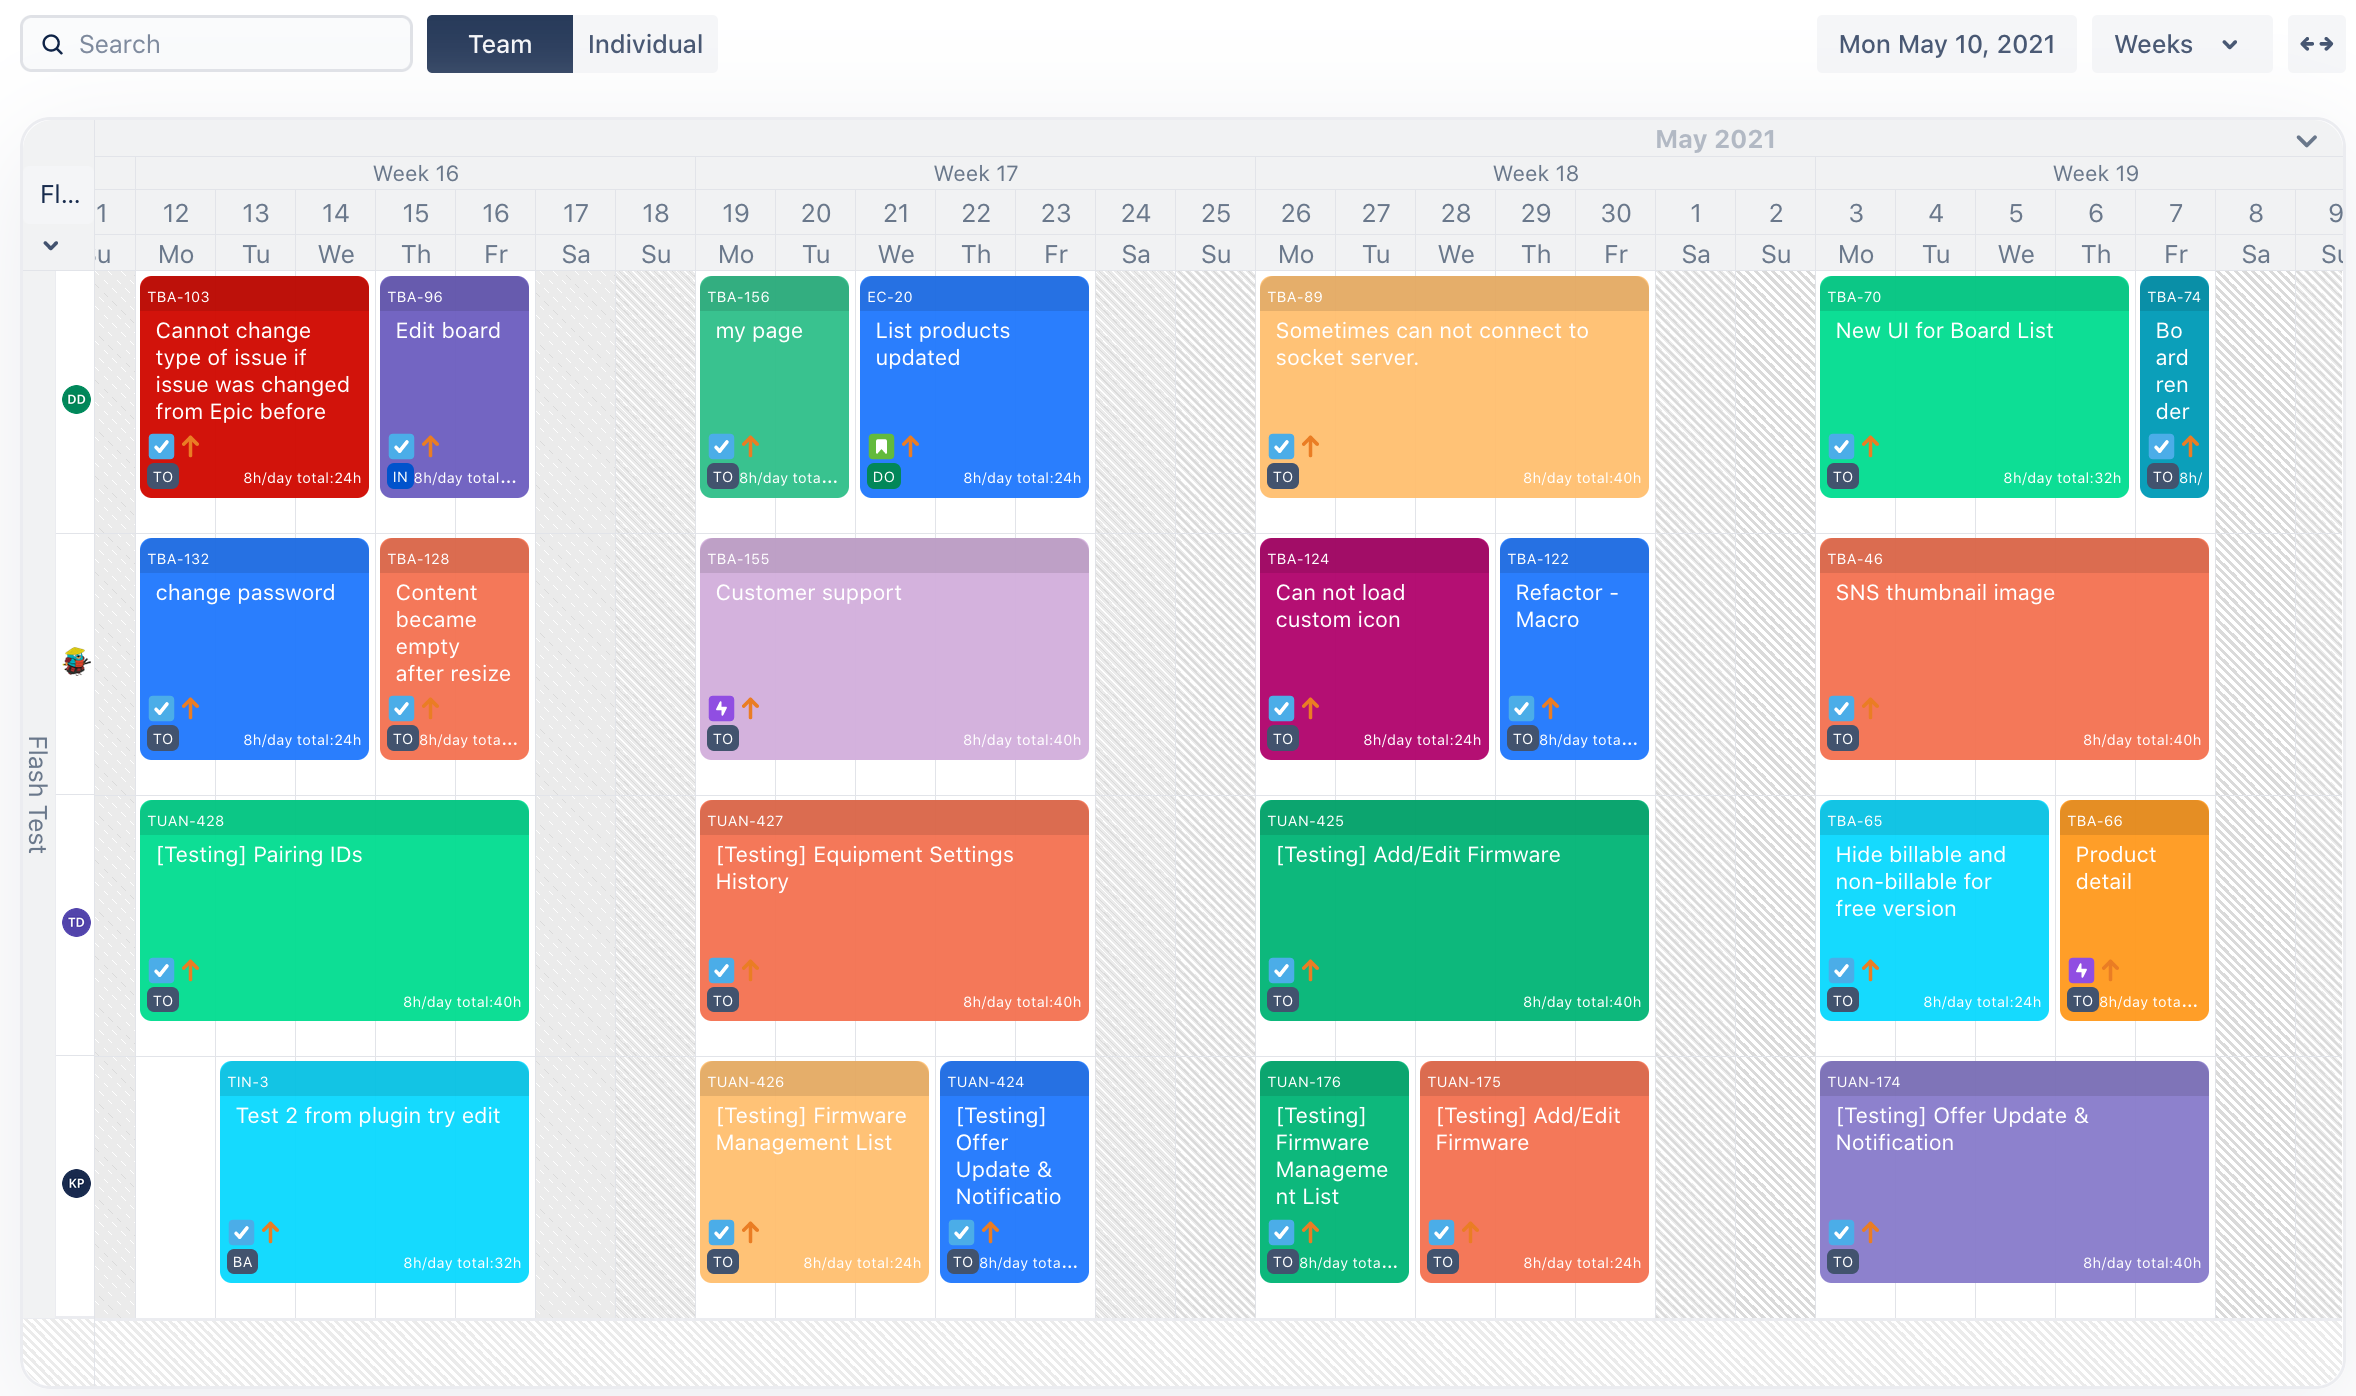 Resource planning for Teams in Jira